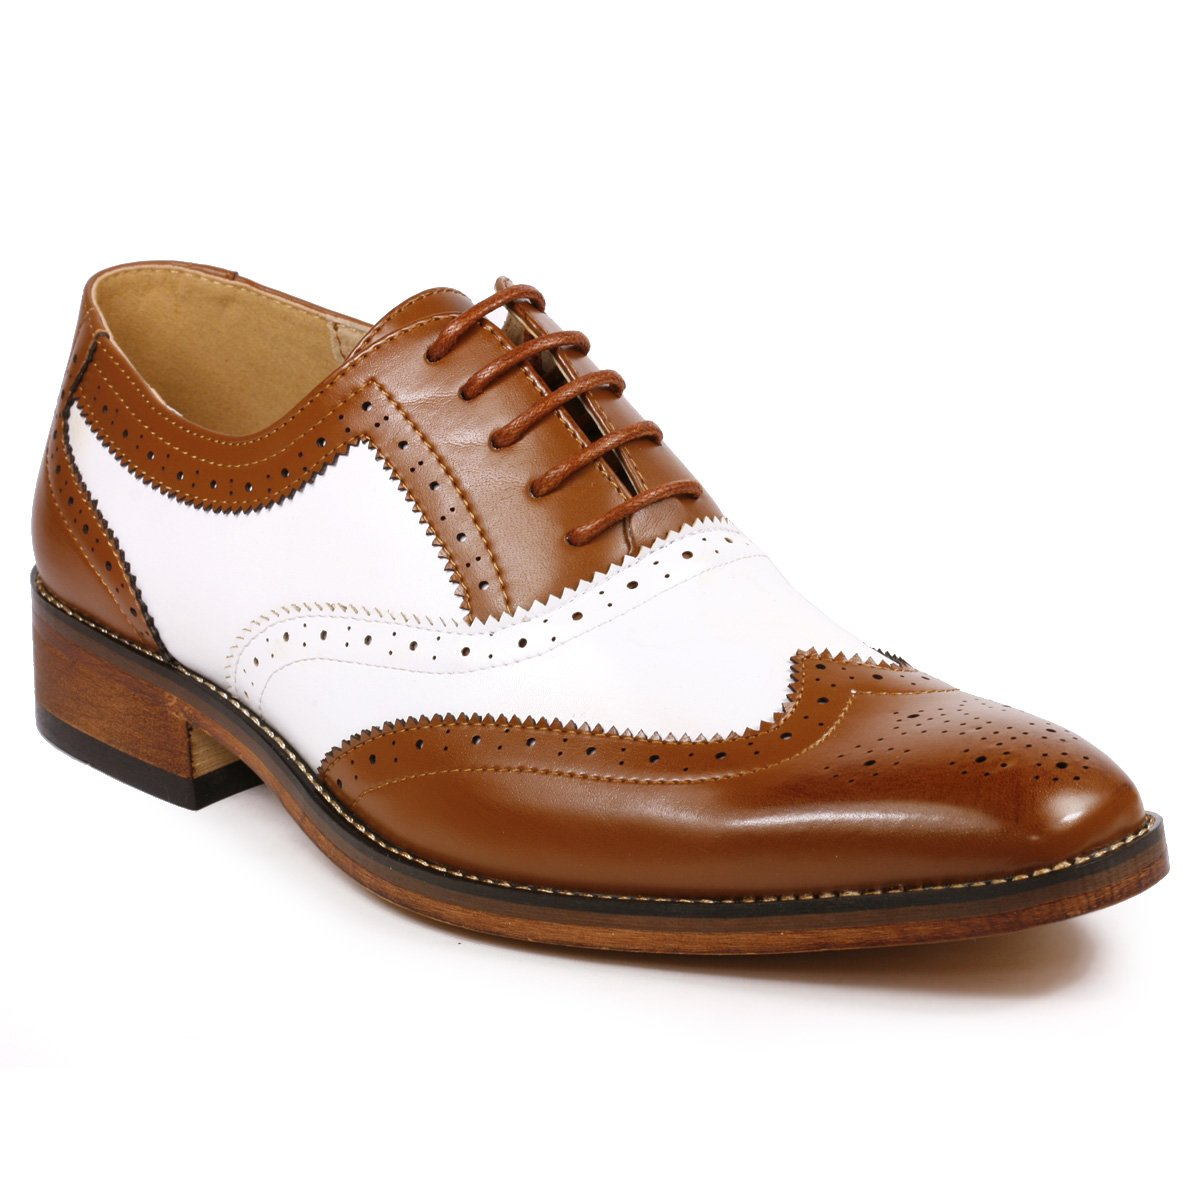 1920s Style Mens Shoes | Peaky Blinders Boots Mens Two Tone Perforated Wing Tip Lace Up Oxford Dress Shoes Metrocharm MC118  £47.49 AT vintagedancer.com